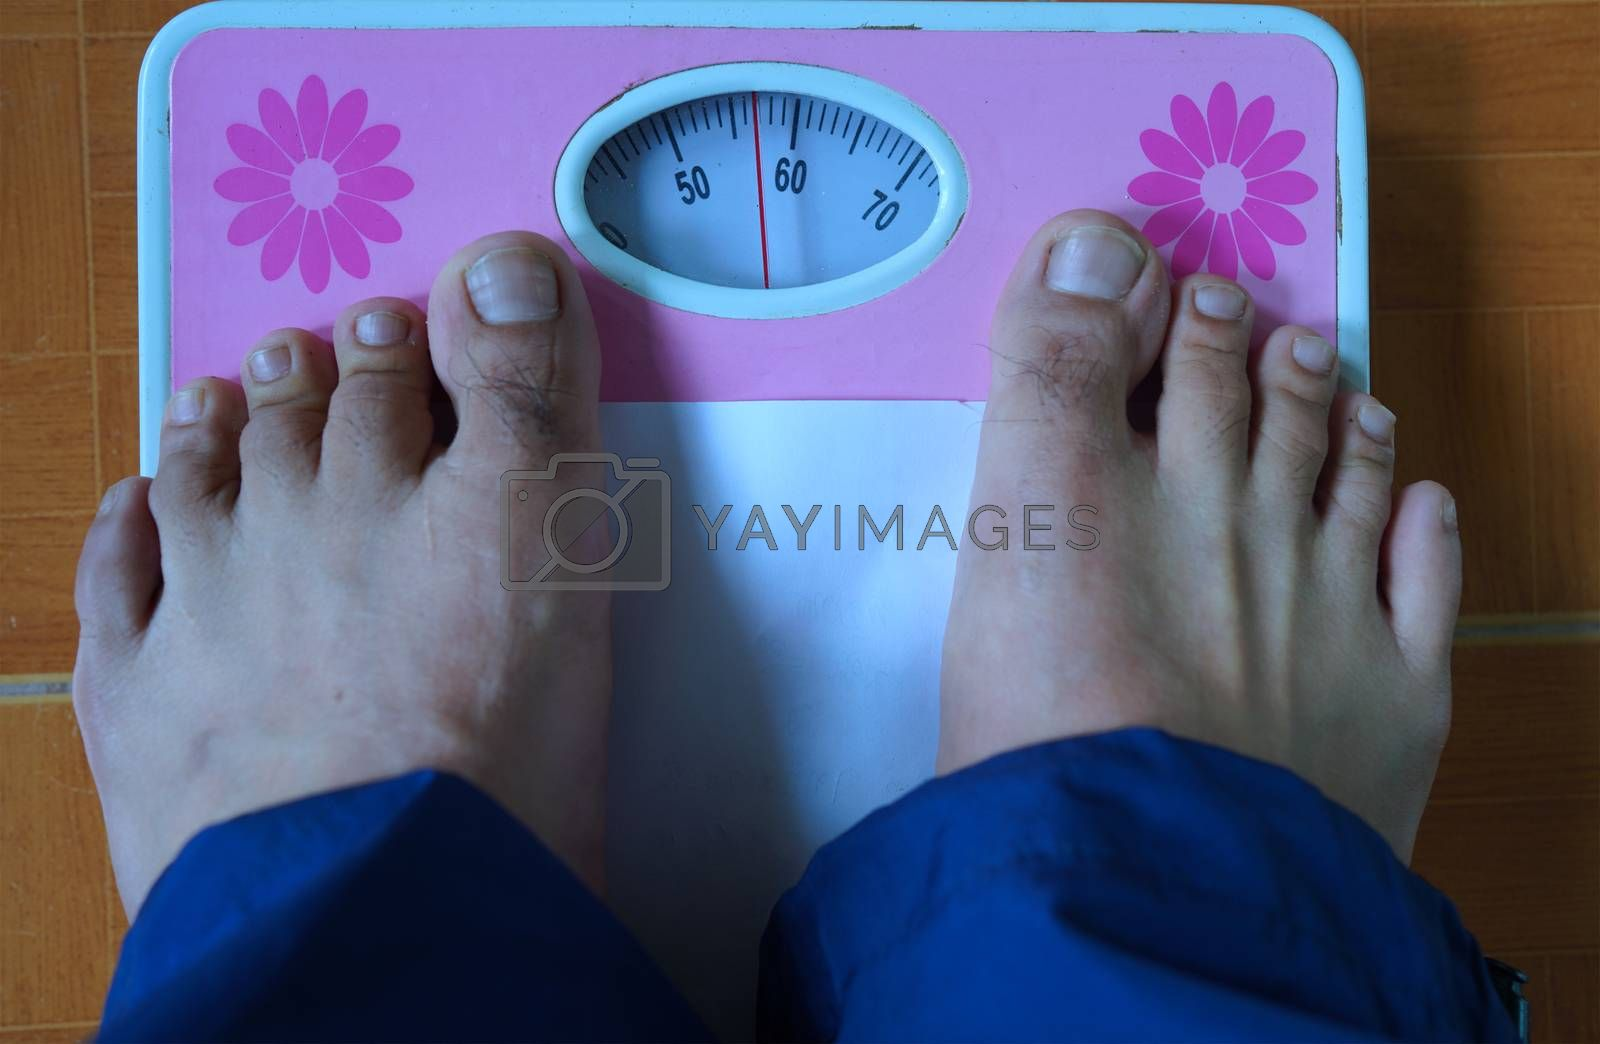 Foot on the weight scale, health and weight management concept.